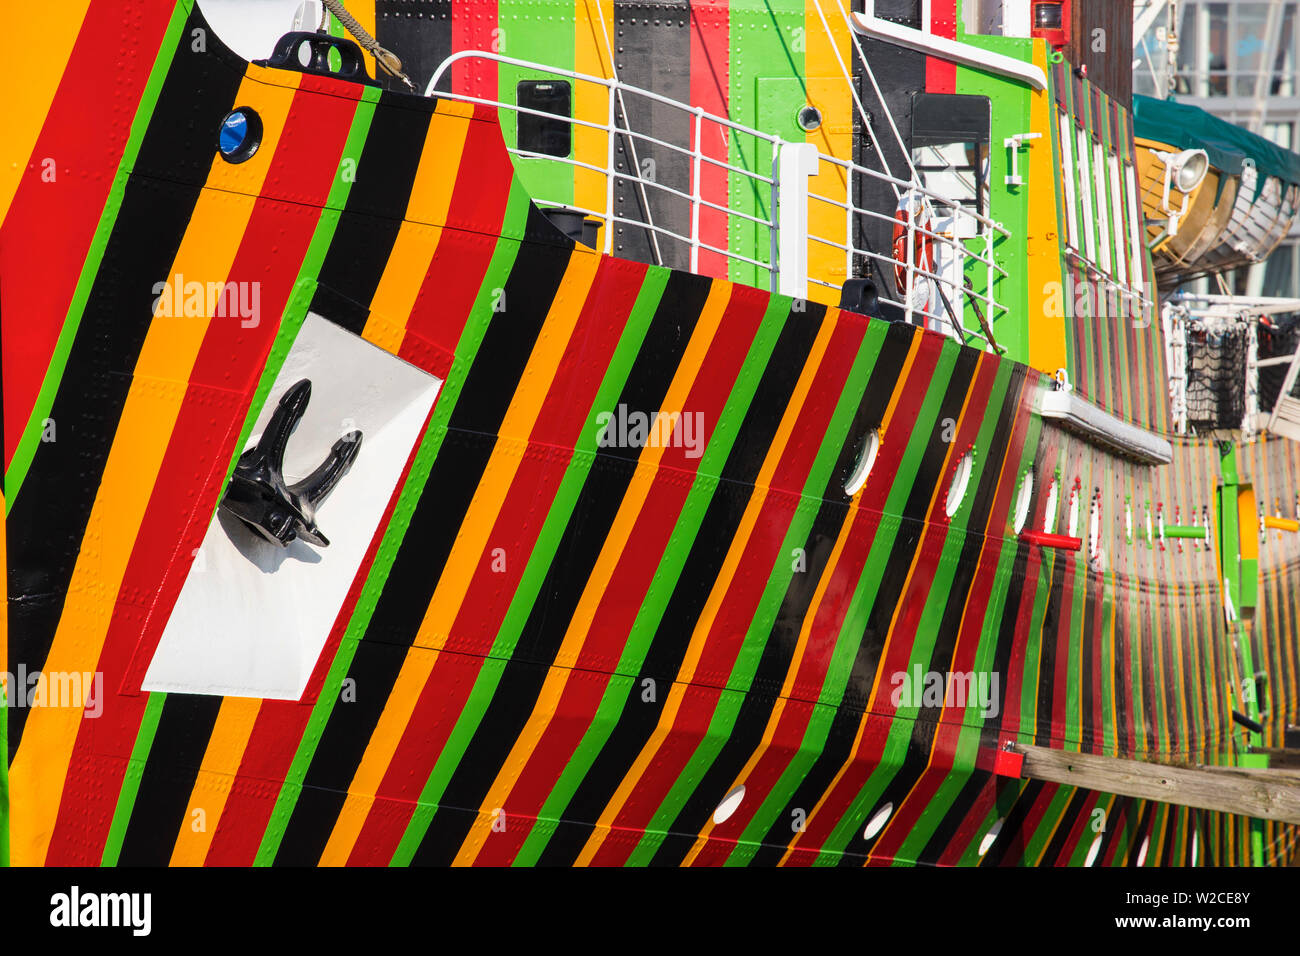 "United Kingdom, England, Merseyside, Liverpool, Albert Dock, The ""Edmund Gardner"" Dazzle Ship by artist Carlos Cruz-Diez, situated in a dry dock - Stock Image"